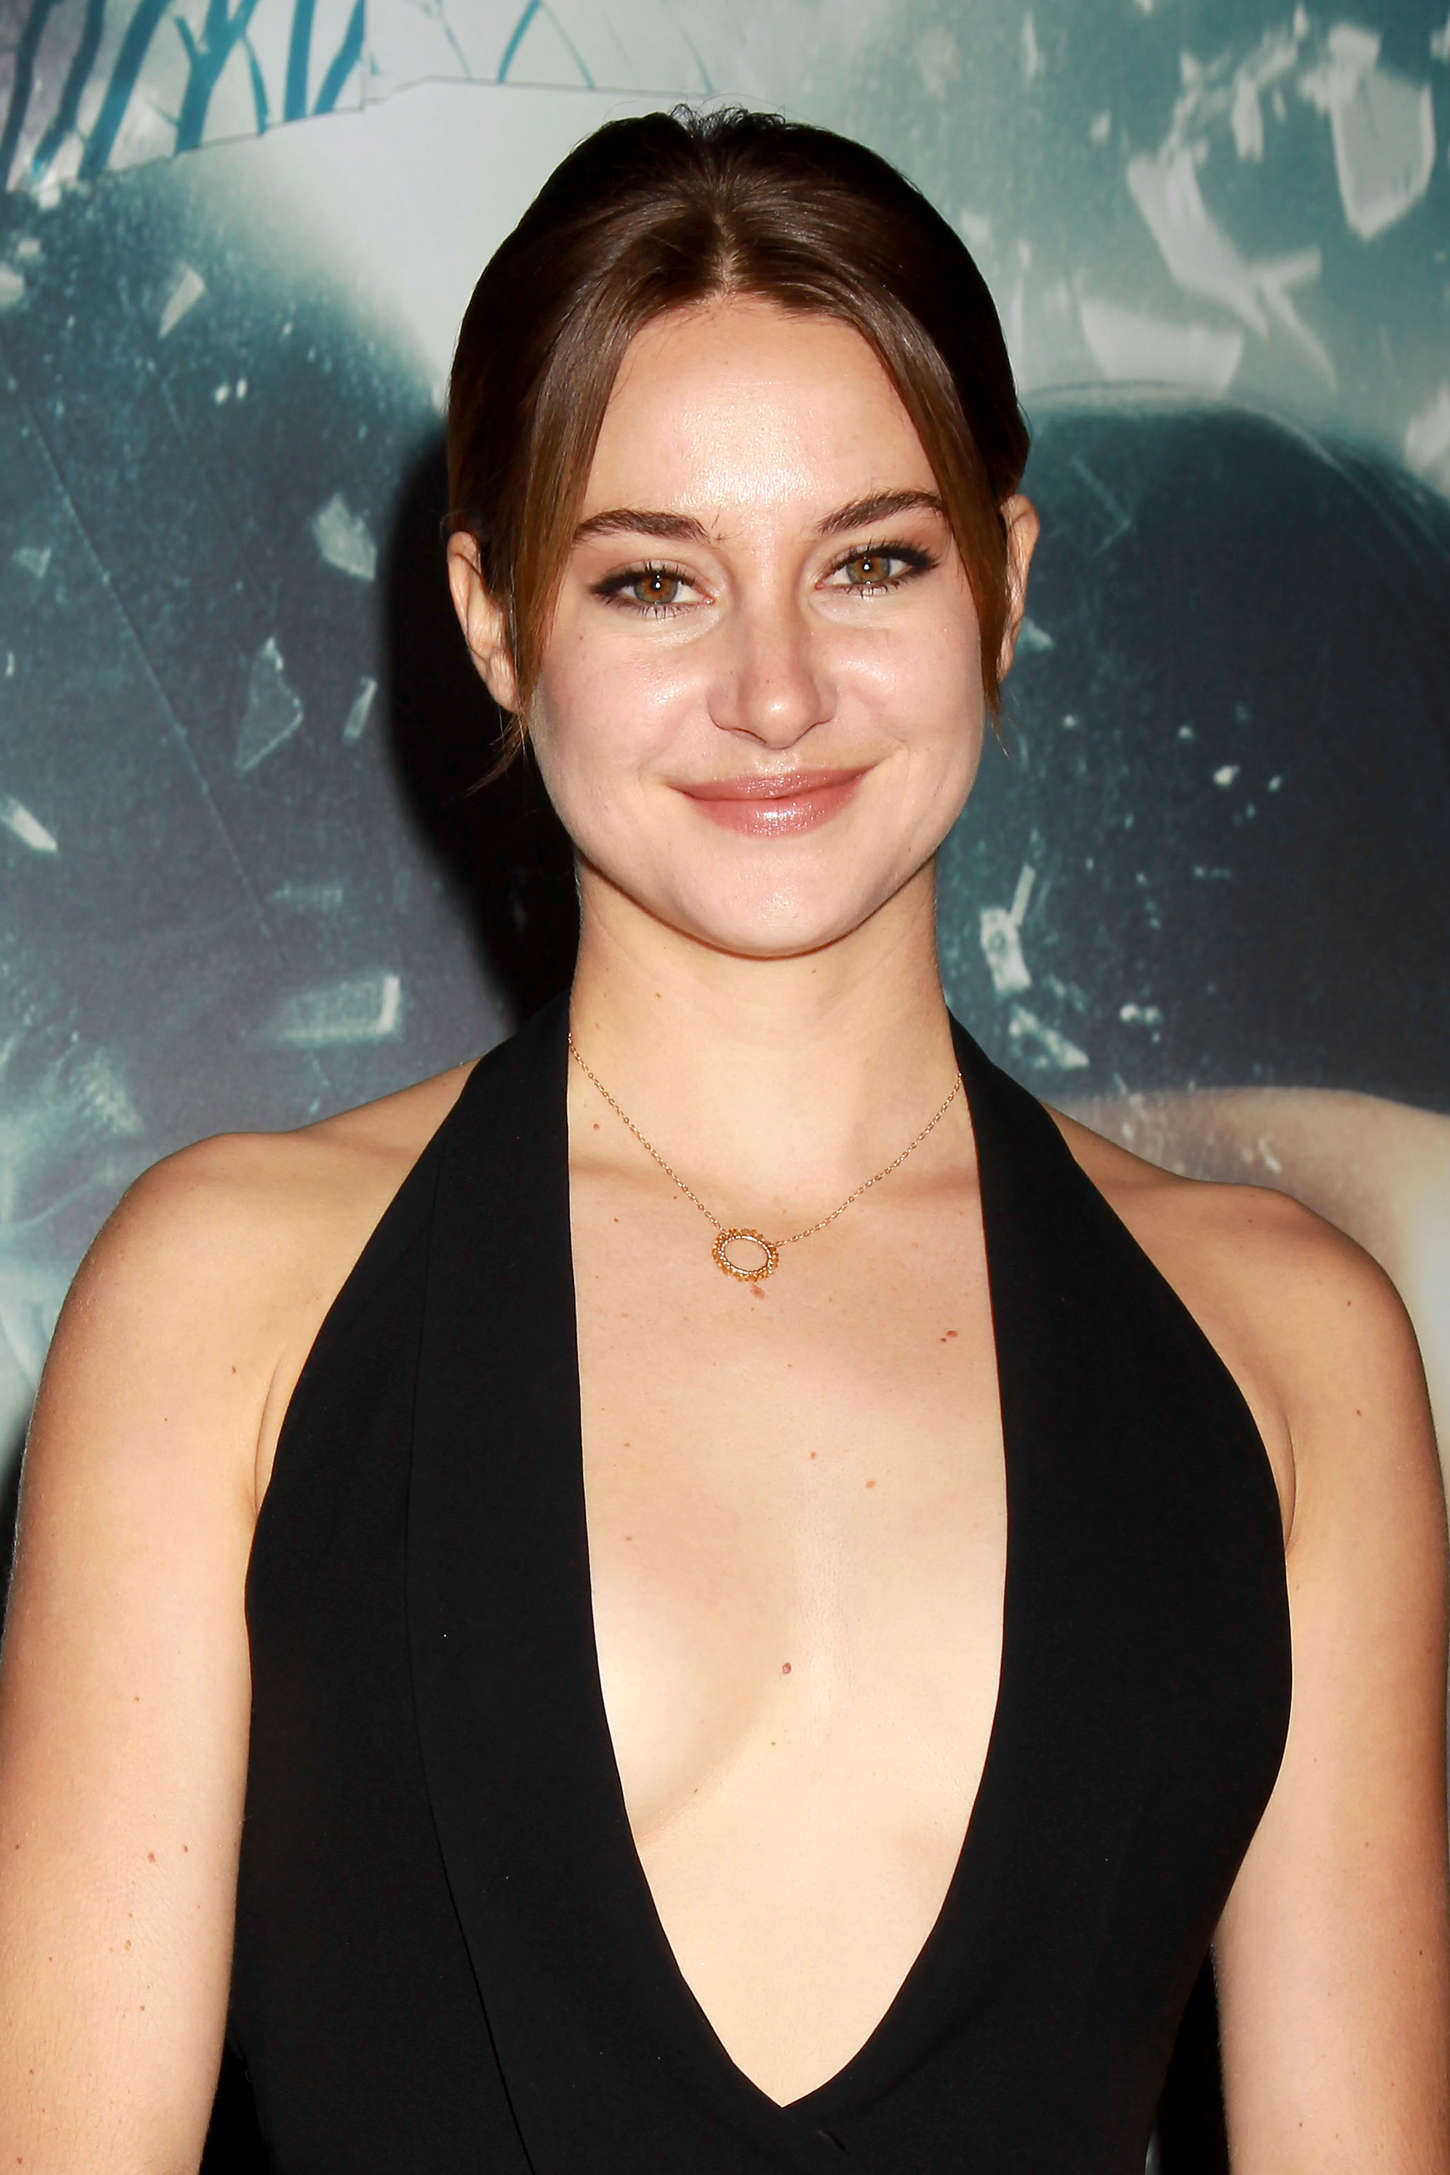 Who is shailene woodley dating in real life 2012 10